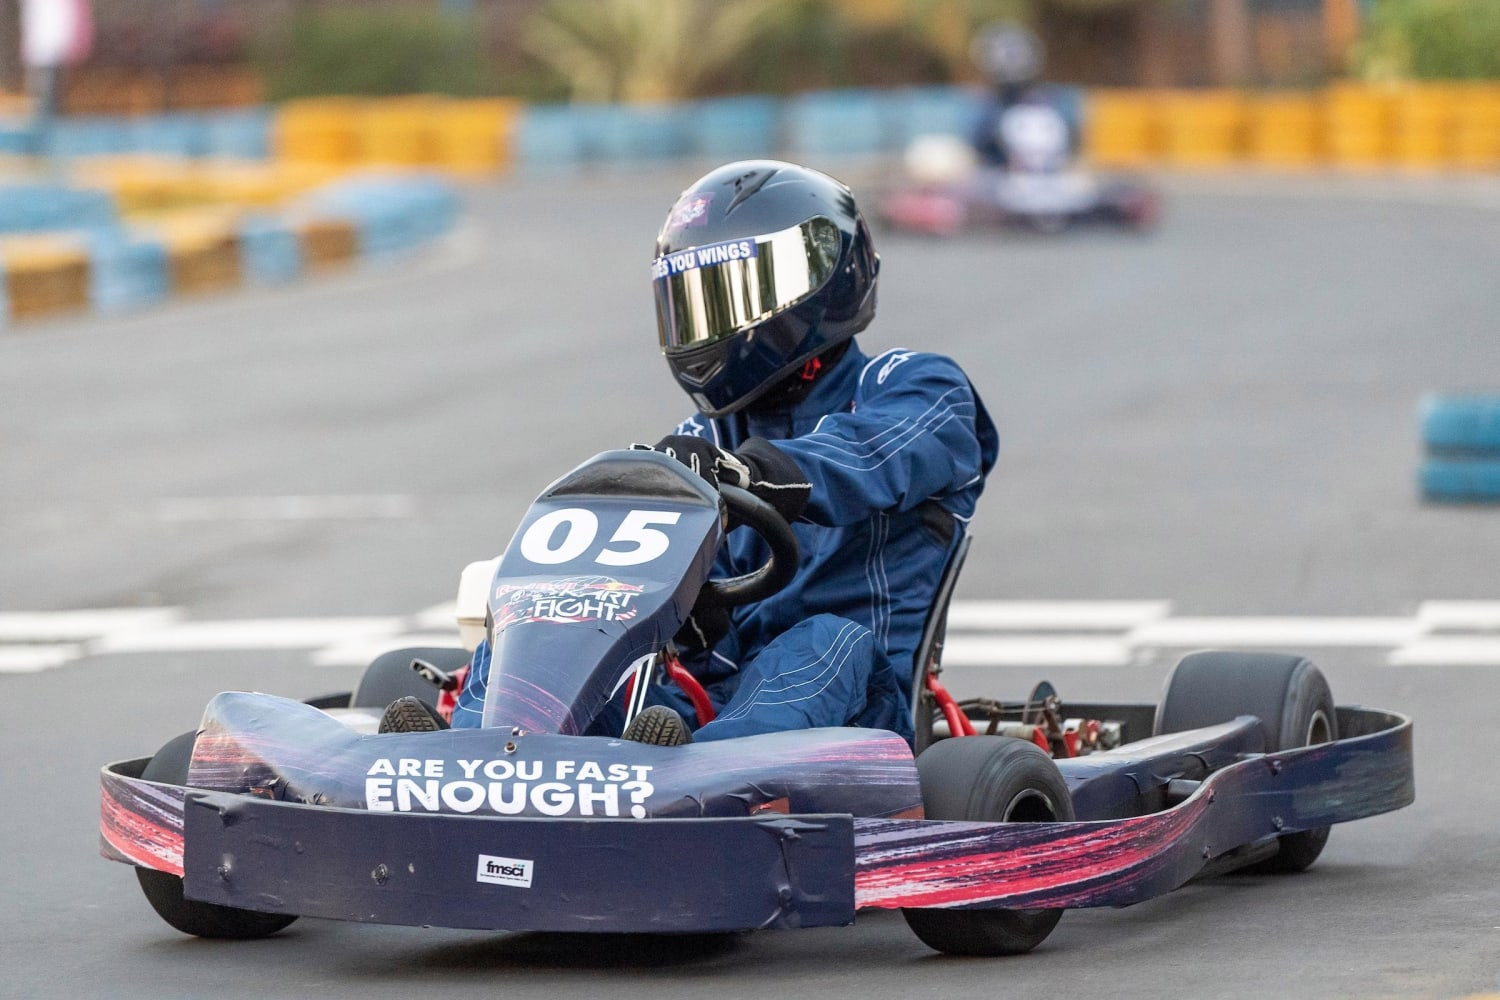 The Best Go-Kart Place for Fun in Baltimore